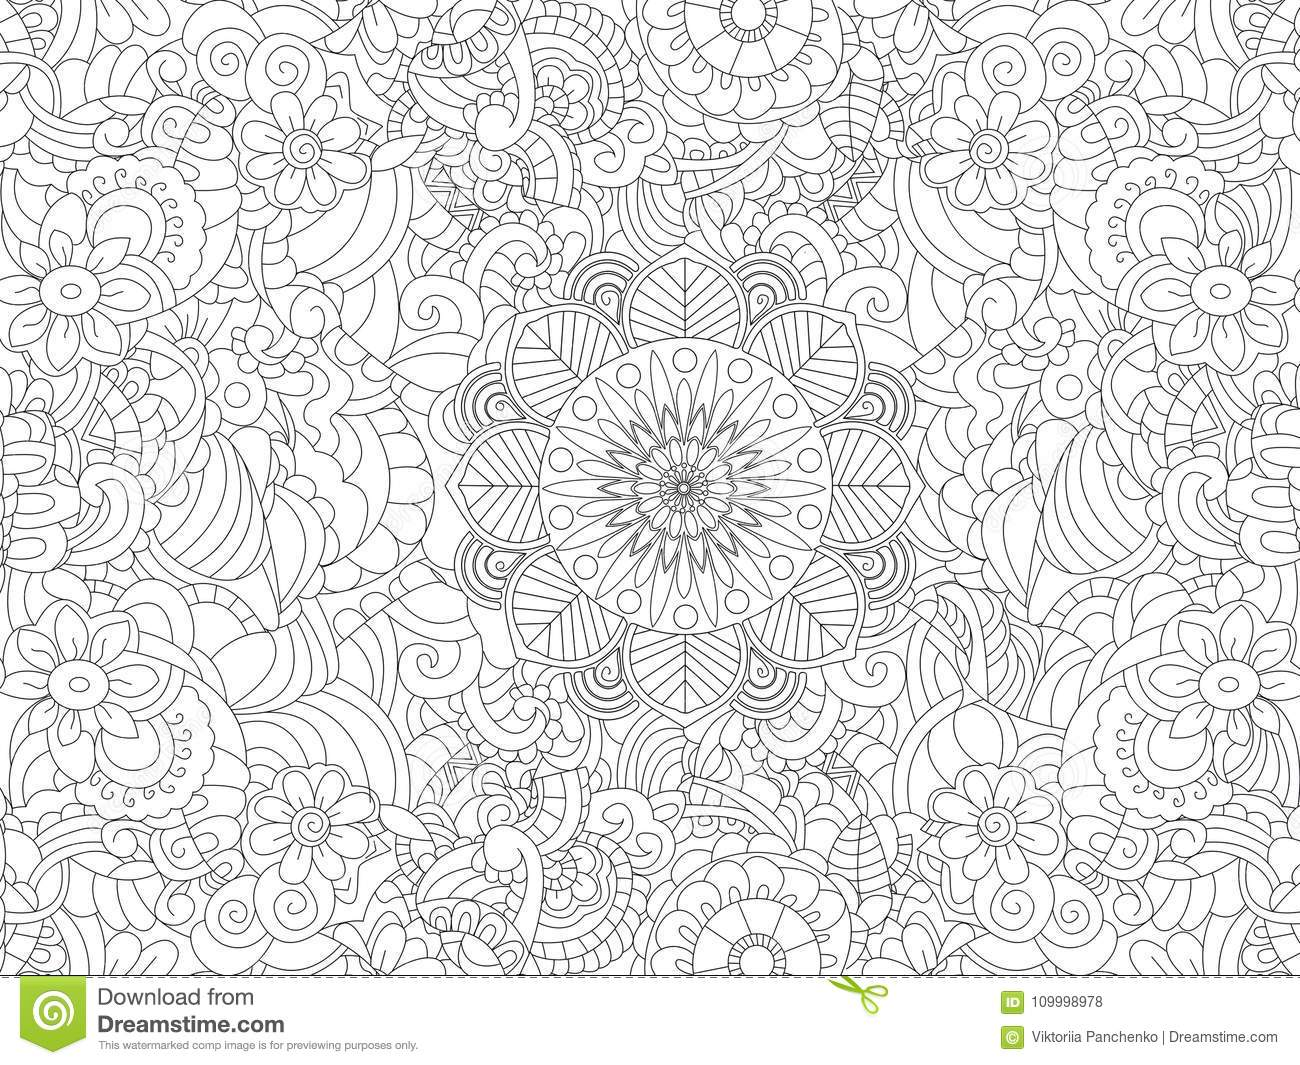 Download Antistress Coloring Book Floral Ornament On The Whole Leaf Black Lines White Background